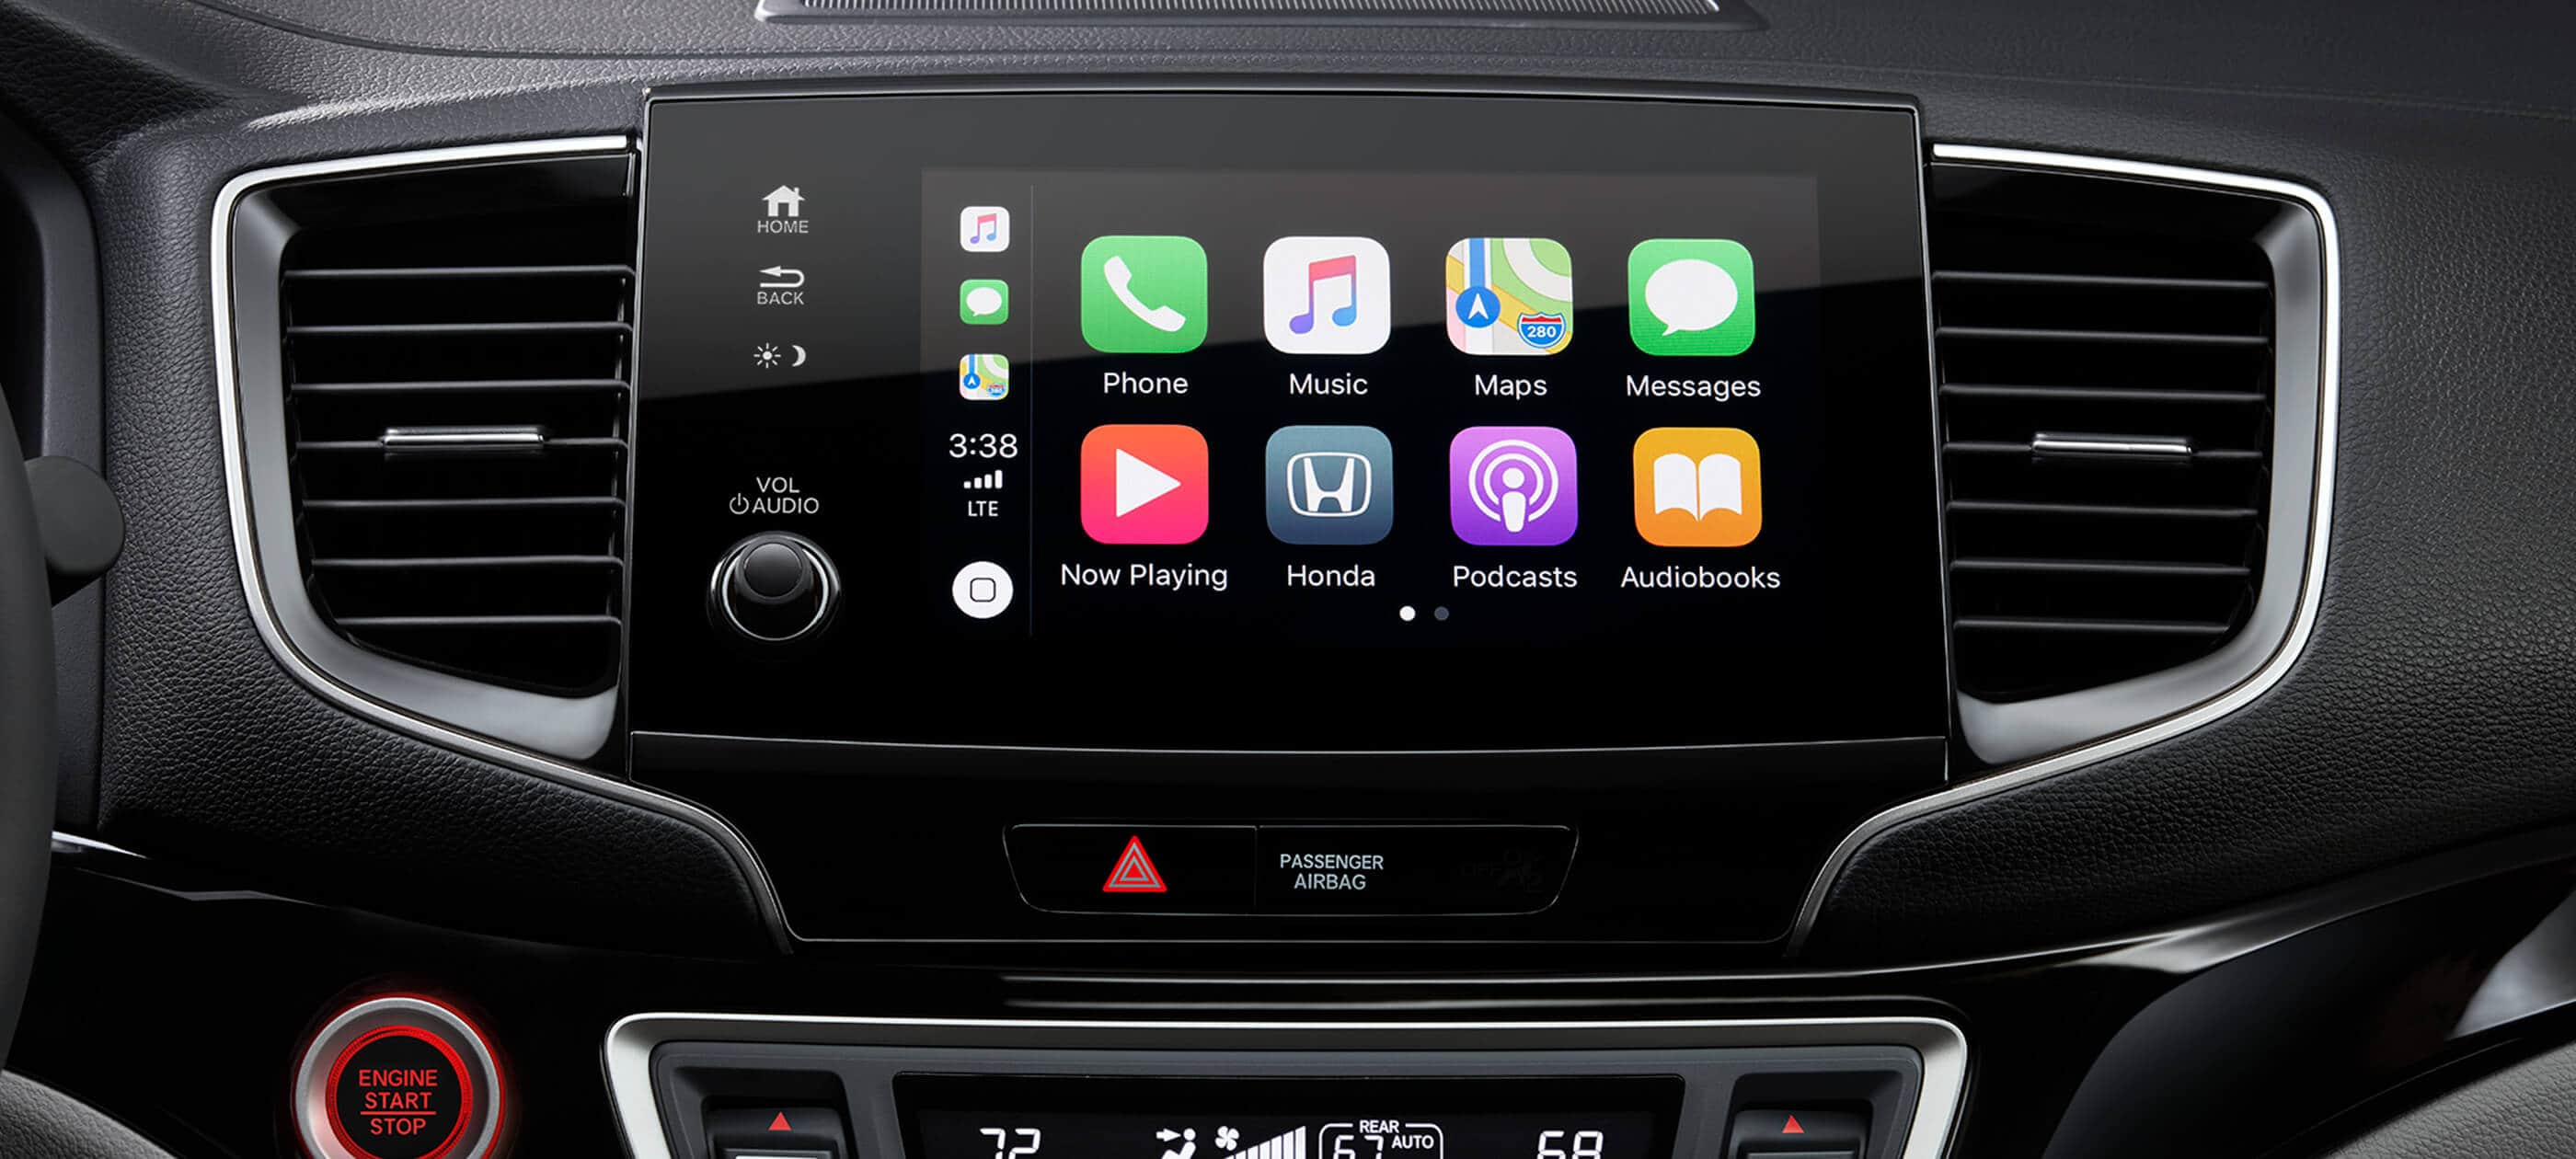 Integración con Apple CarPlay™ Disponible